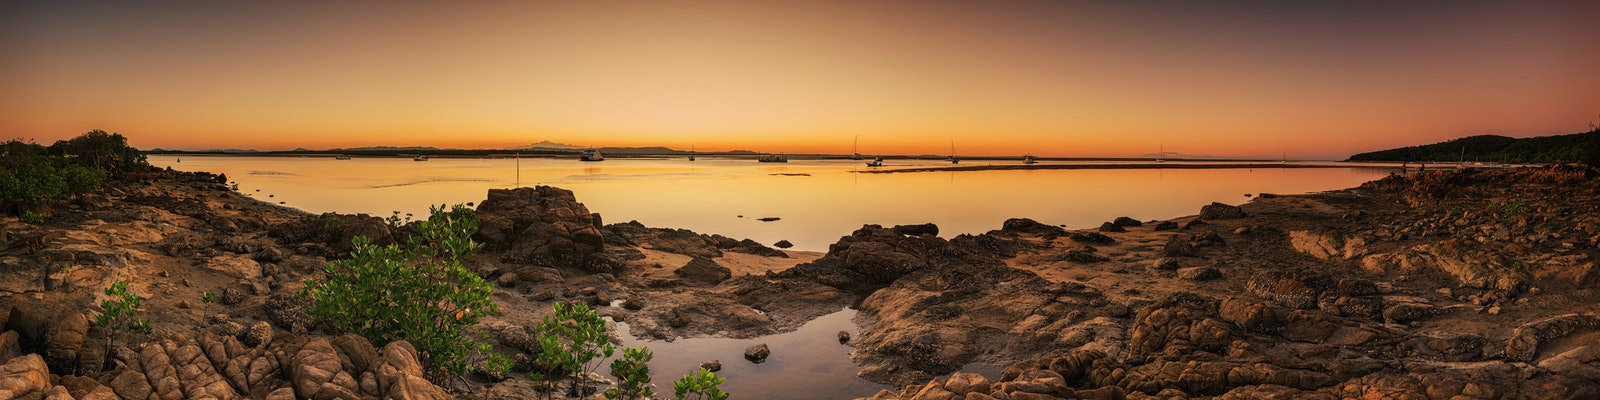 Serenity at Sunset, 1770 - This is a panorama taken after sunset at a little village on the Discovery Coast of Queensland at Seventeen Seventy.  Want...